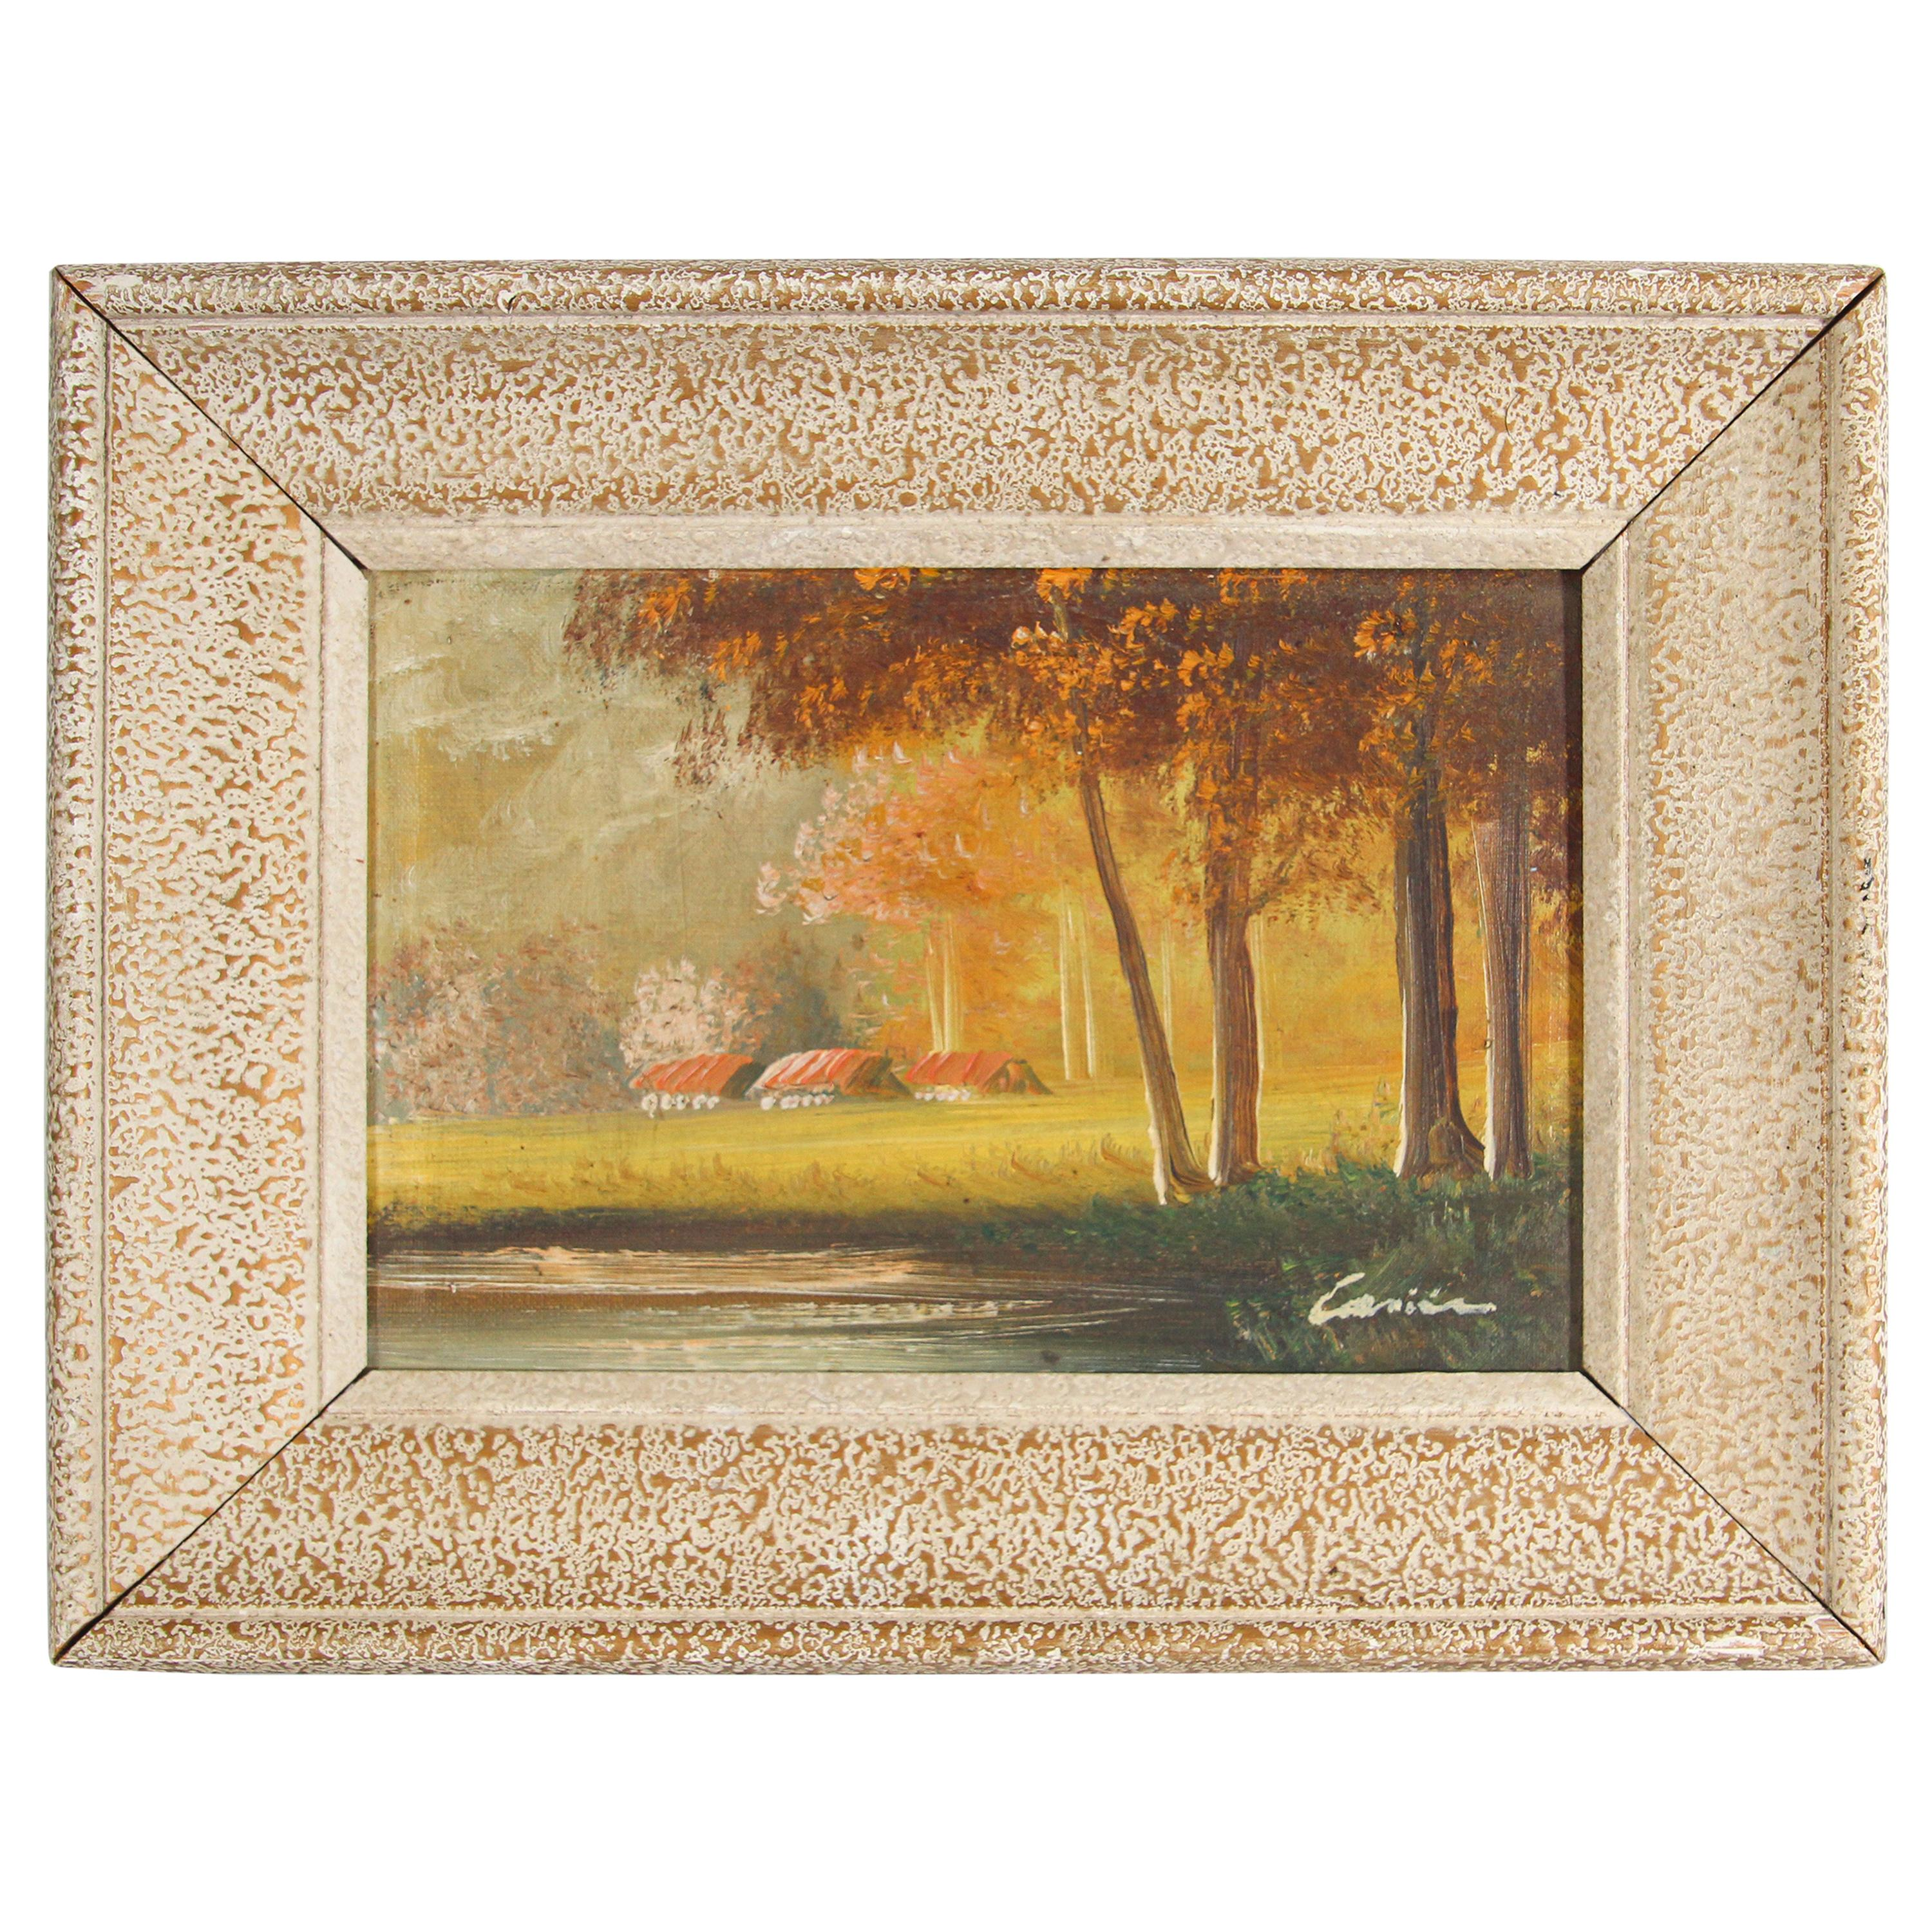 Antique French Provincial Oil on Canvas Painting